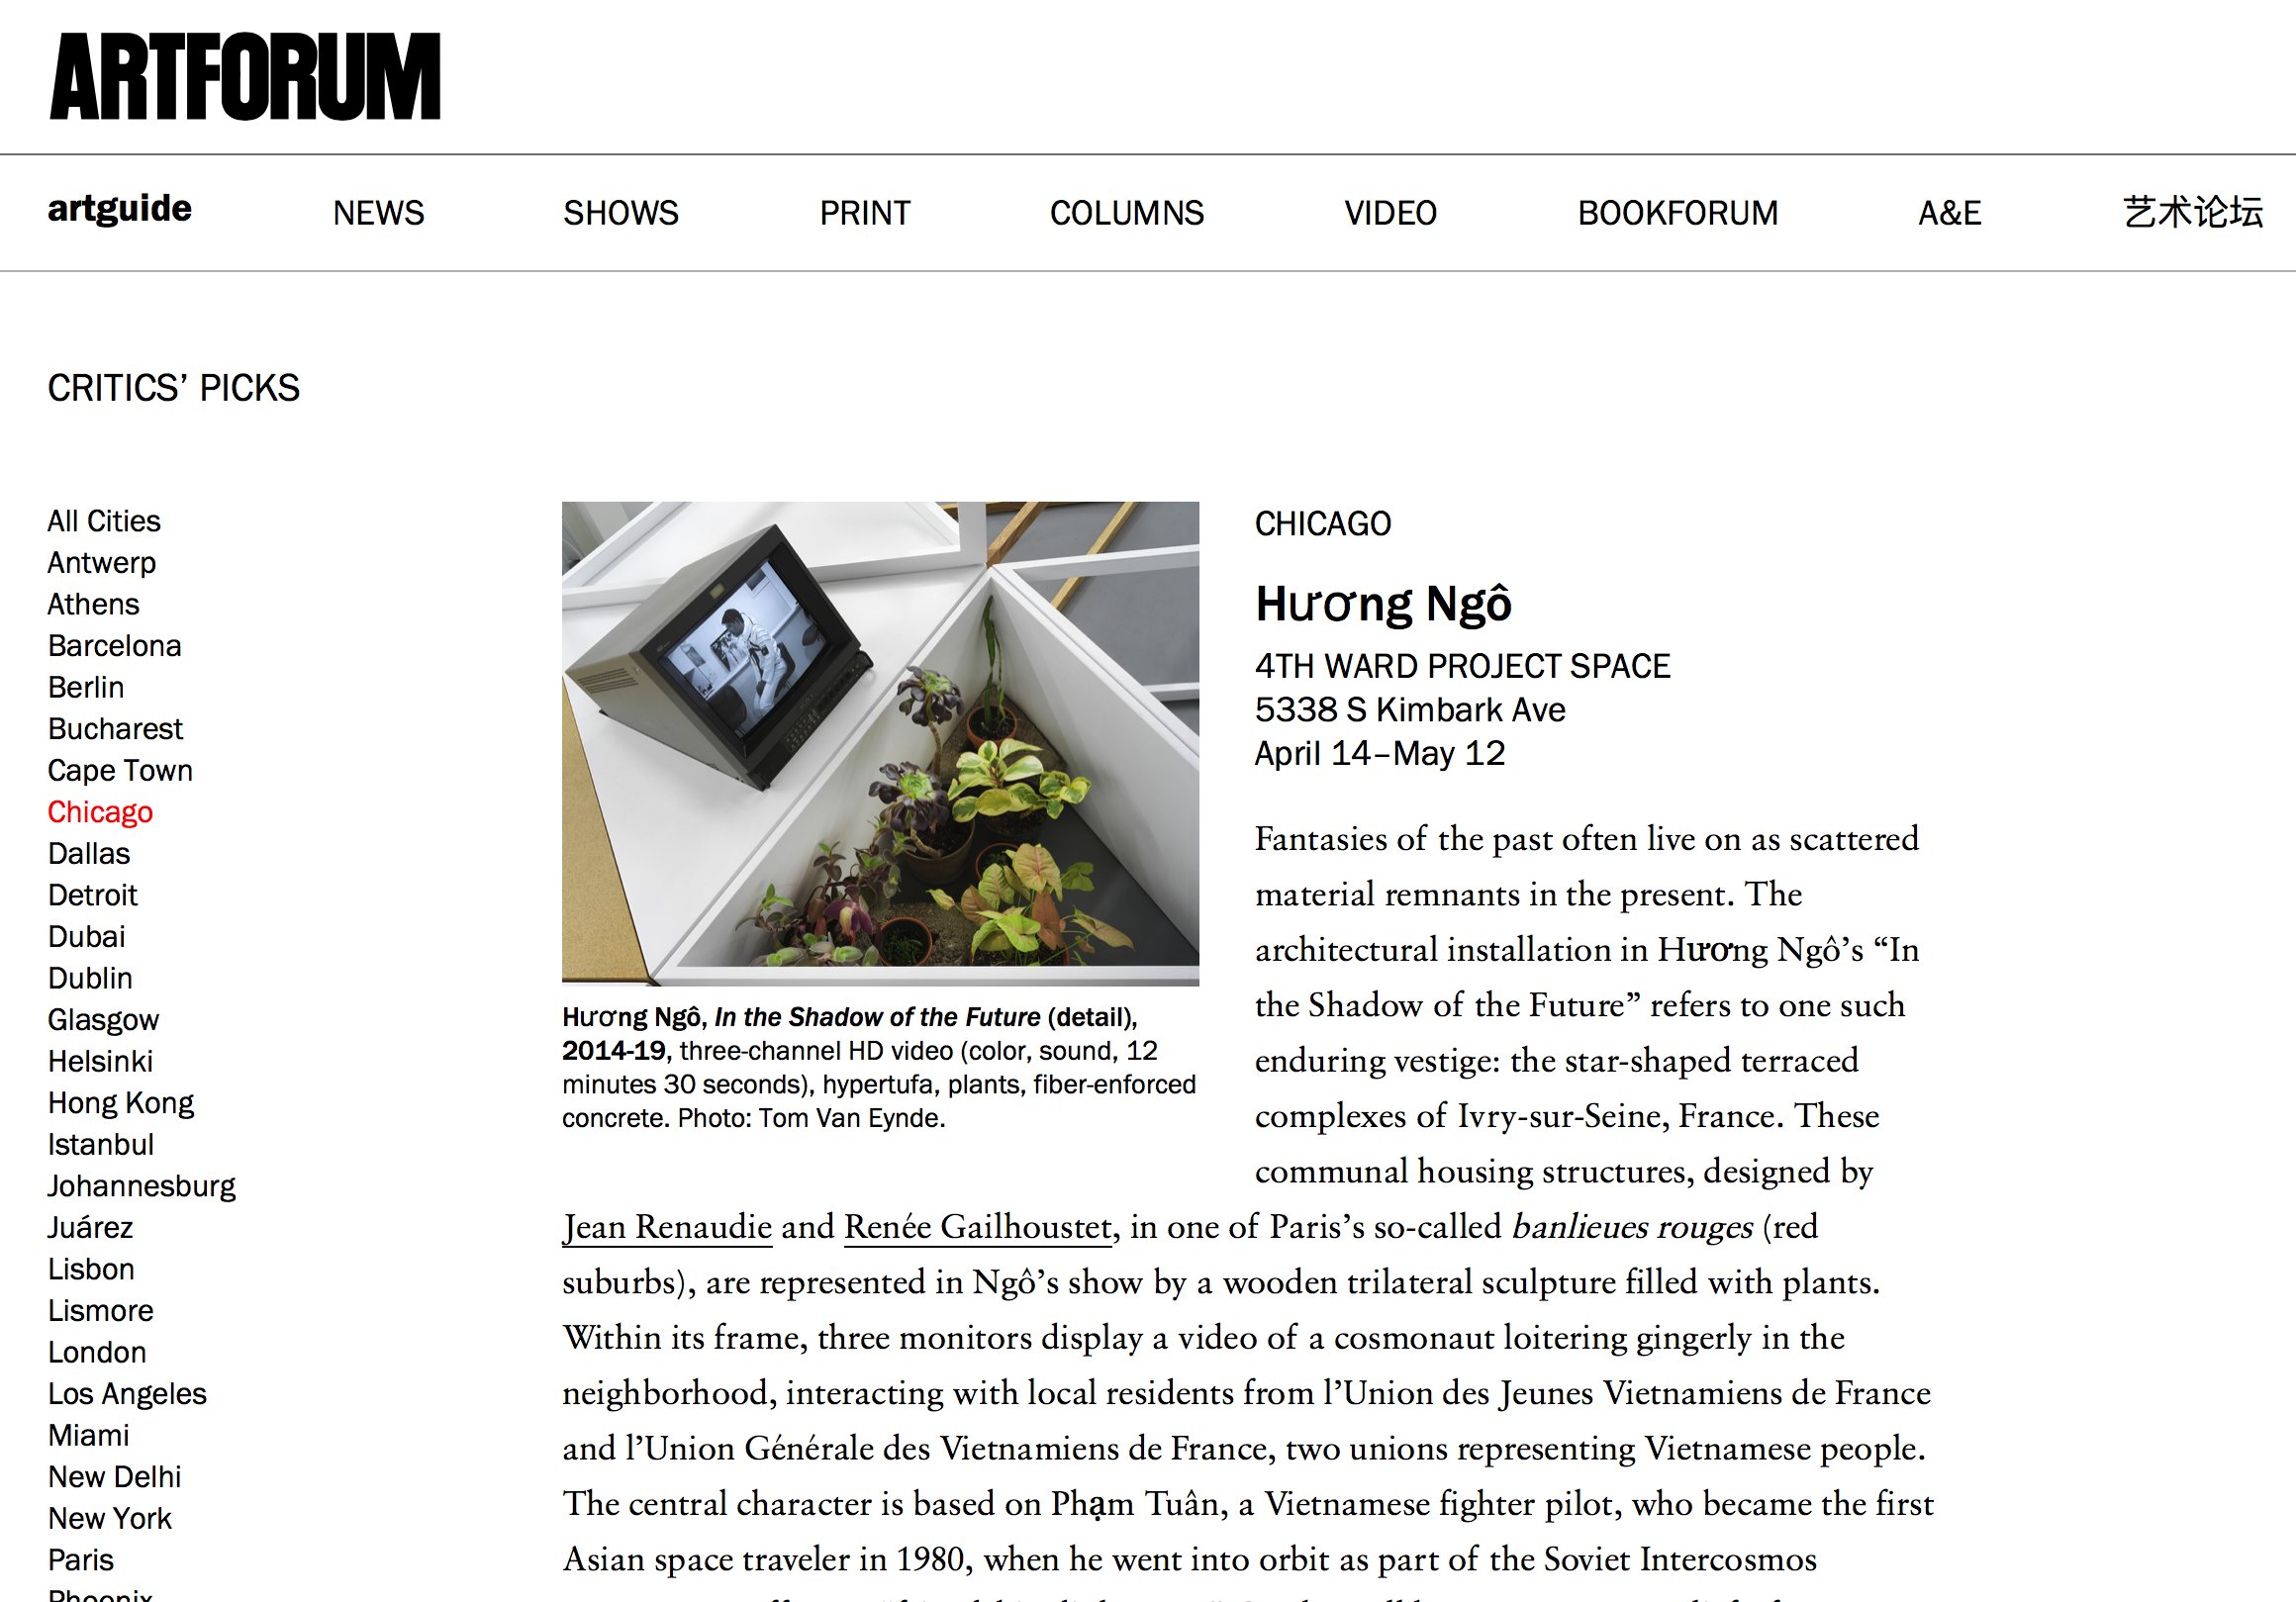 Ngo_Huong_In_the_Shadow_of_the_Future_Artforum.png